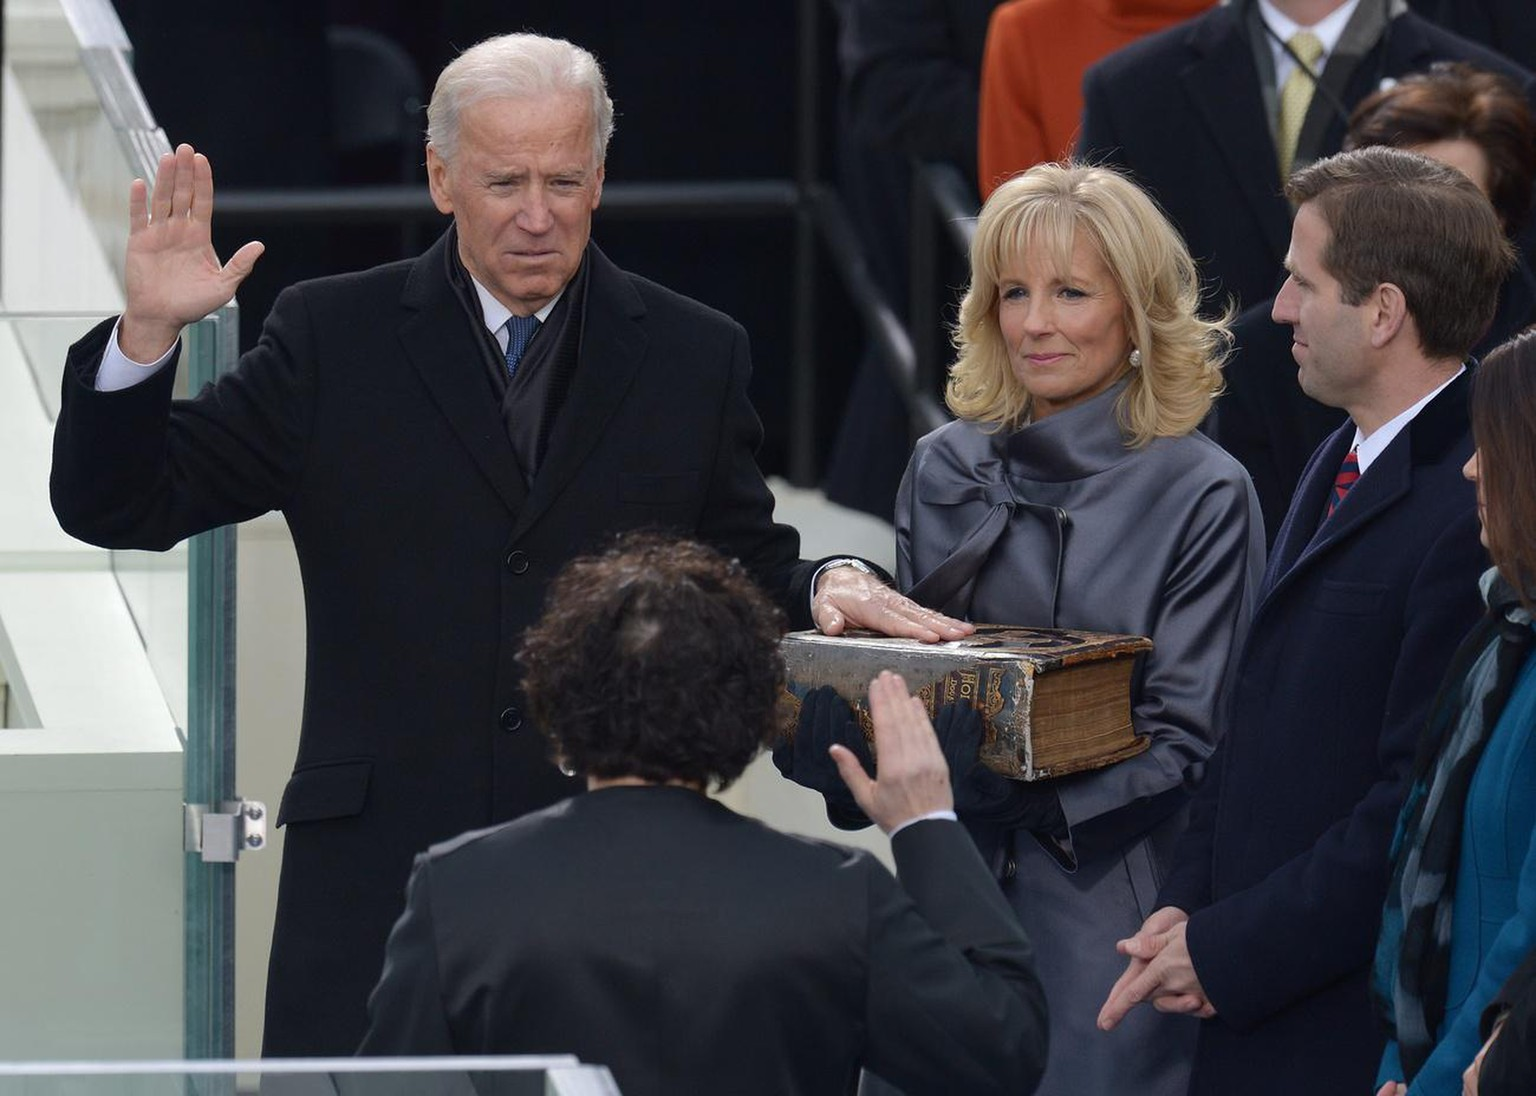 epa03548393 US Vice President Joe Biden (L) places his hand on a bible held by his wife Dr. Jill Biden (C) as he takes the ceremonial oath of office from Supreme Court Justice Sonia Sotomayor (2nd L) before US President Barack Obama is ceremonially sworn in for a second term as the 44th President of the United States in Washington, DC, USA, 21 January 2013. Obama defeated Republican candidate Mitt Romney on Election Day 06 November 2012 to be re-elected for a second term. EPA/JUSTIN LANE